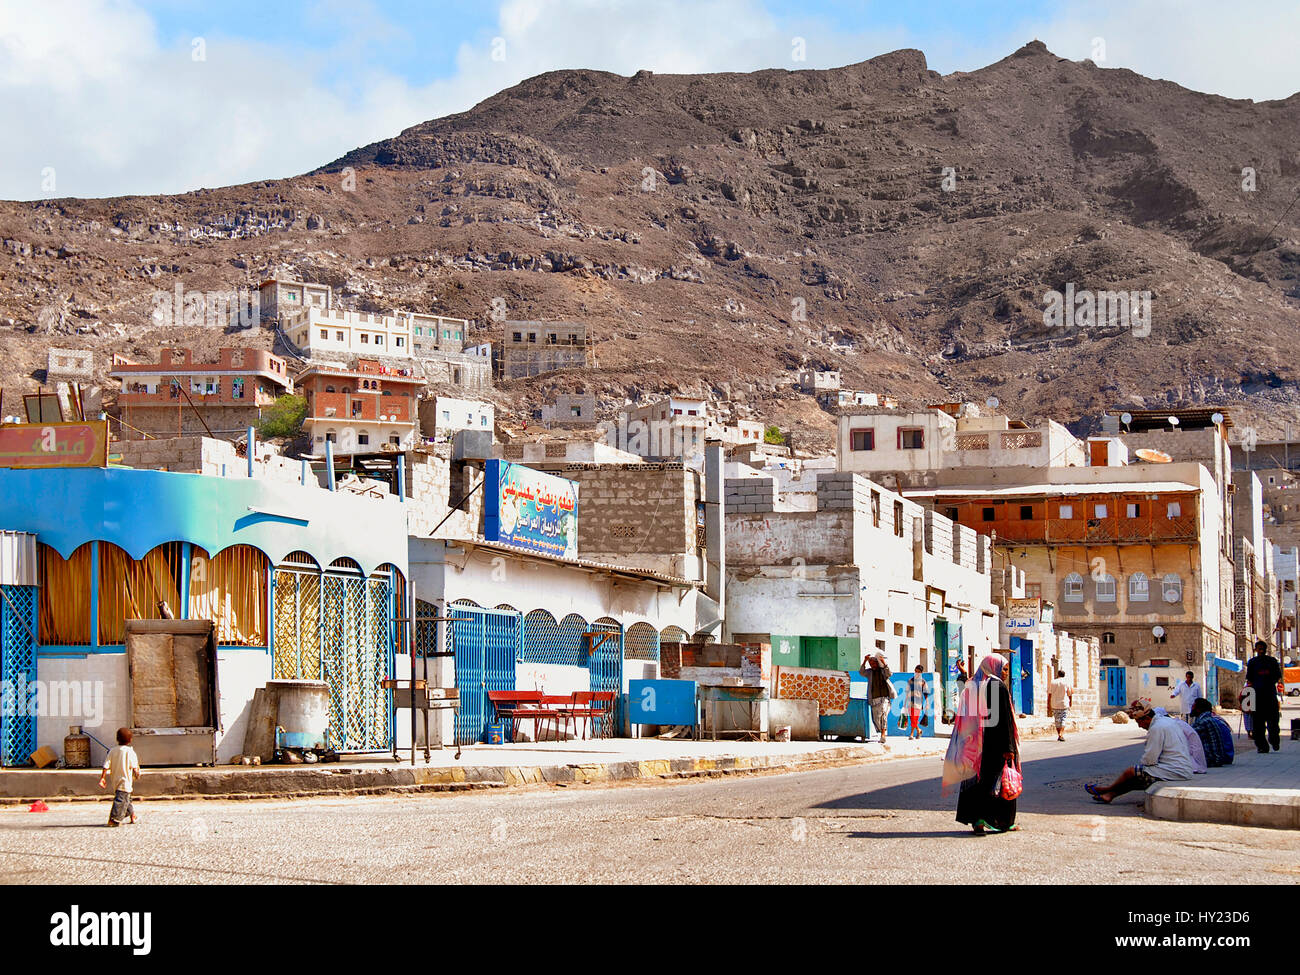 Image of a typical street scene in the traditional Arabian city of Aden in Yemen. - Stock Image